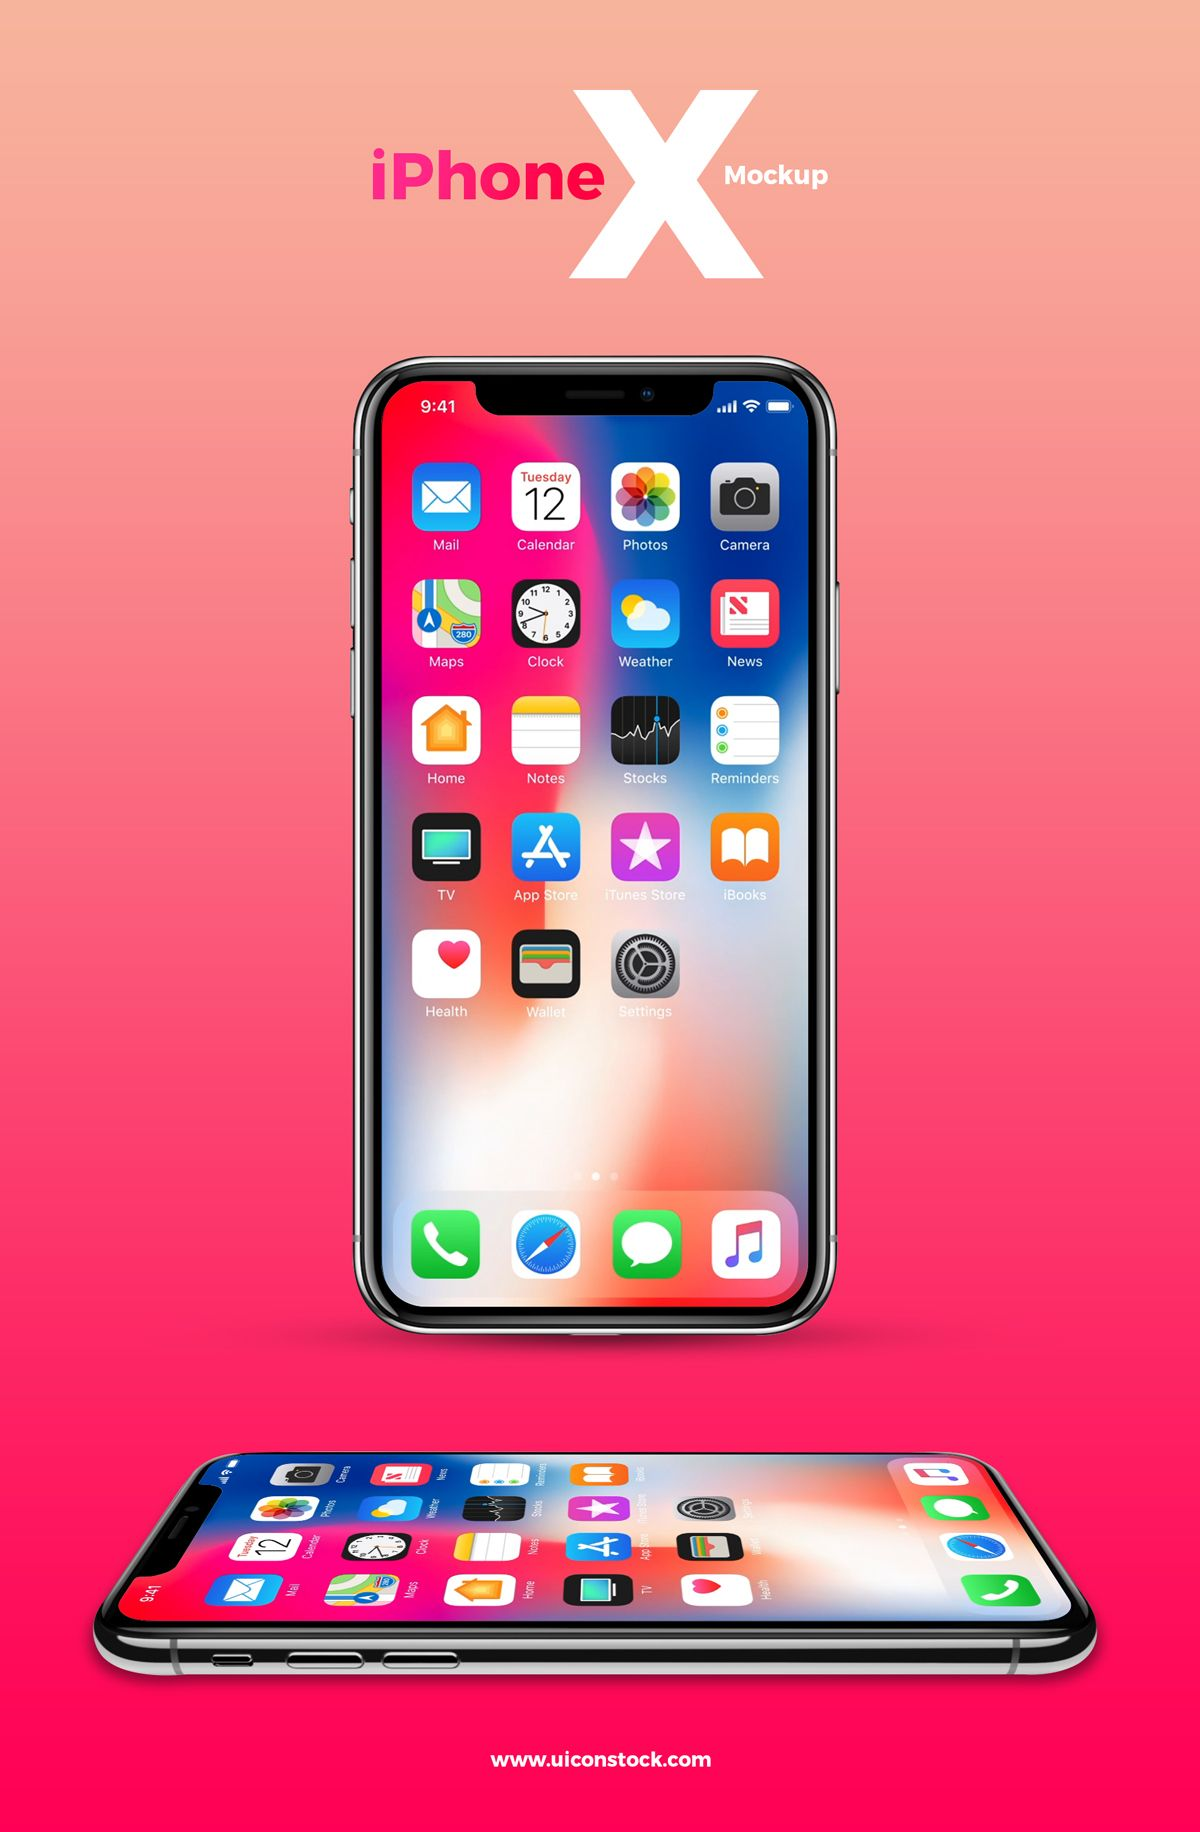 Free iPhone X Mockup With 2 Angles Free iphone, Iphone